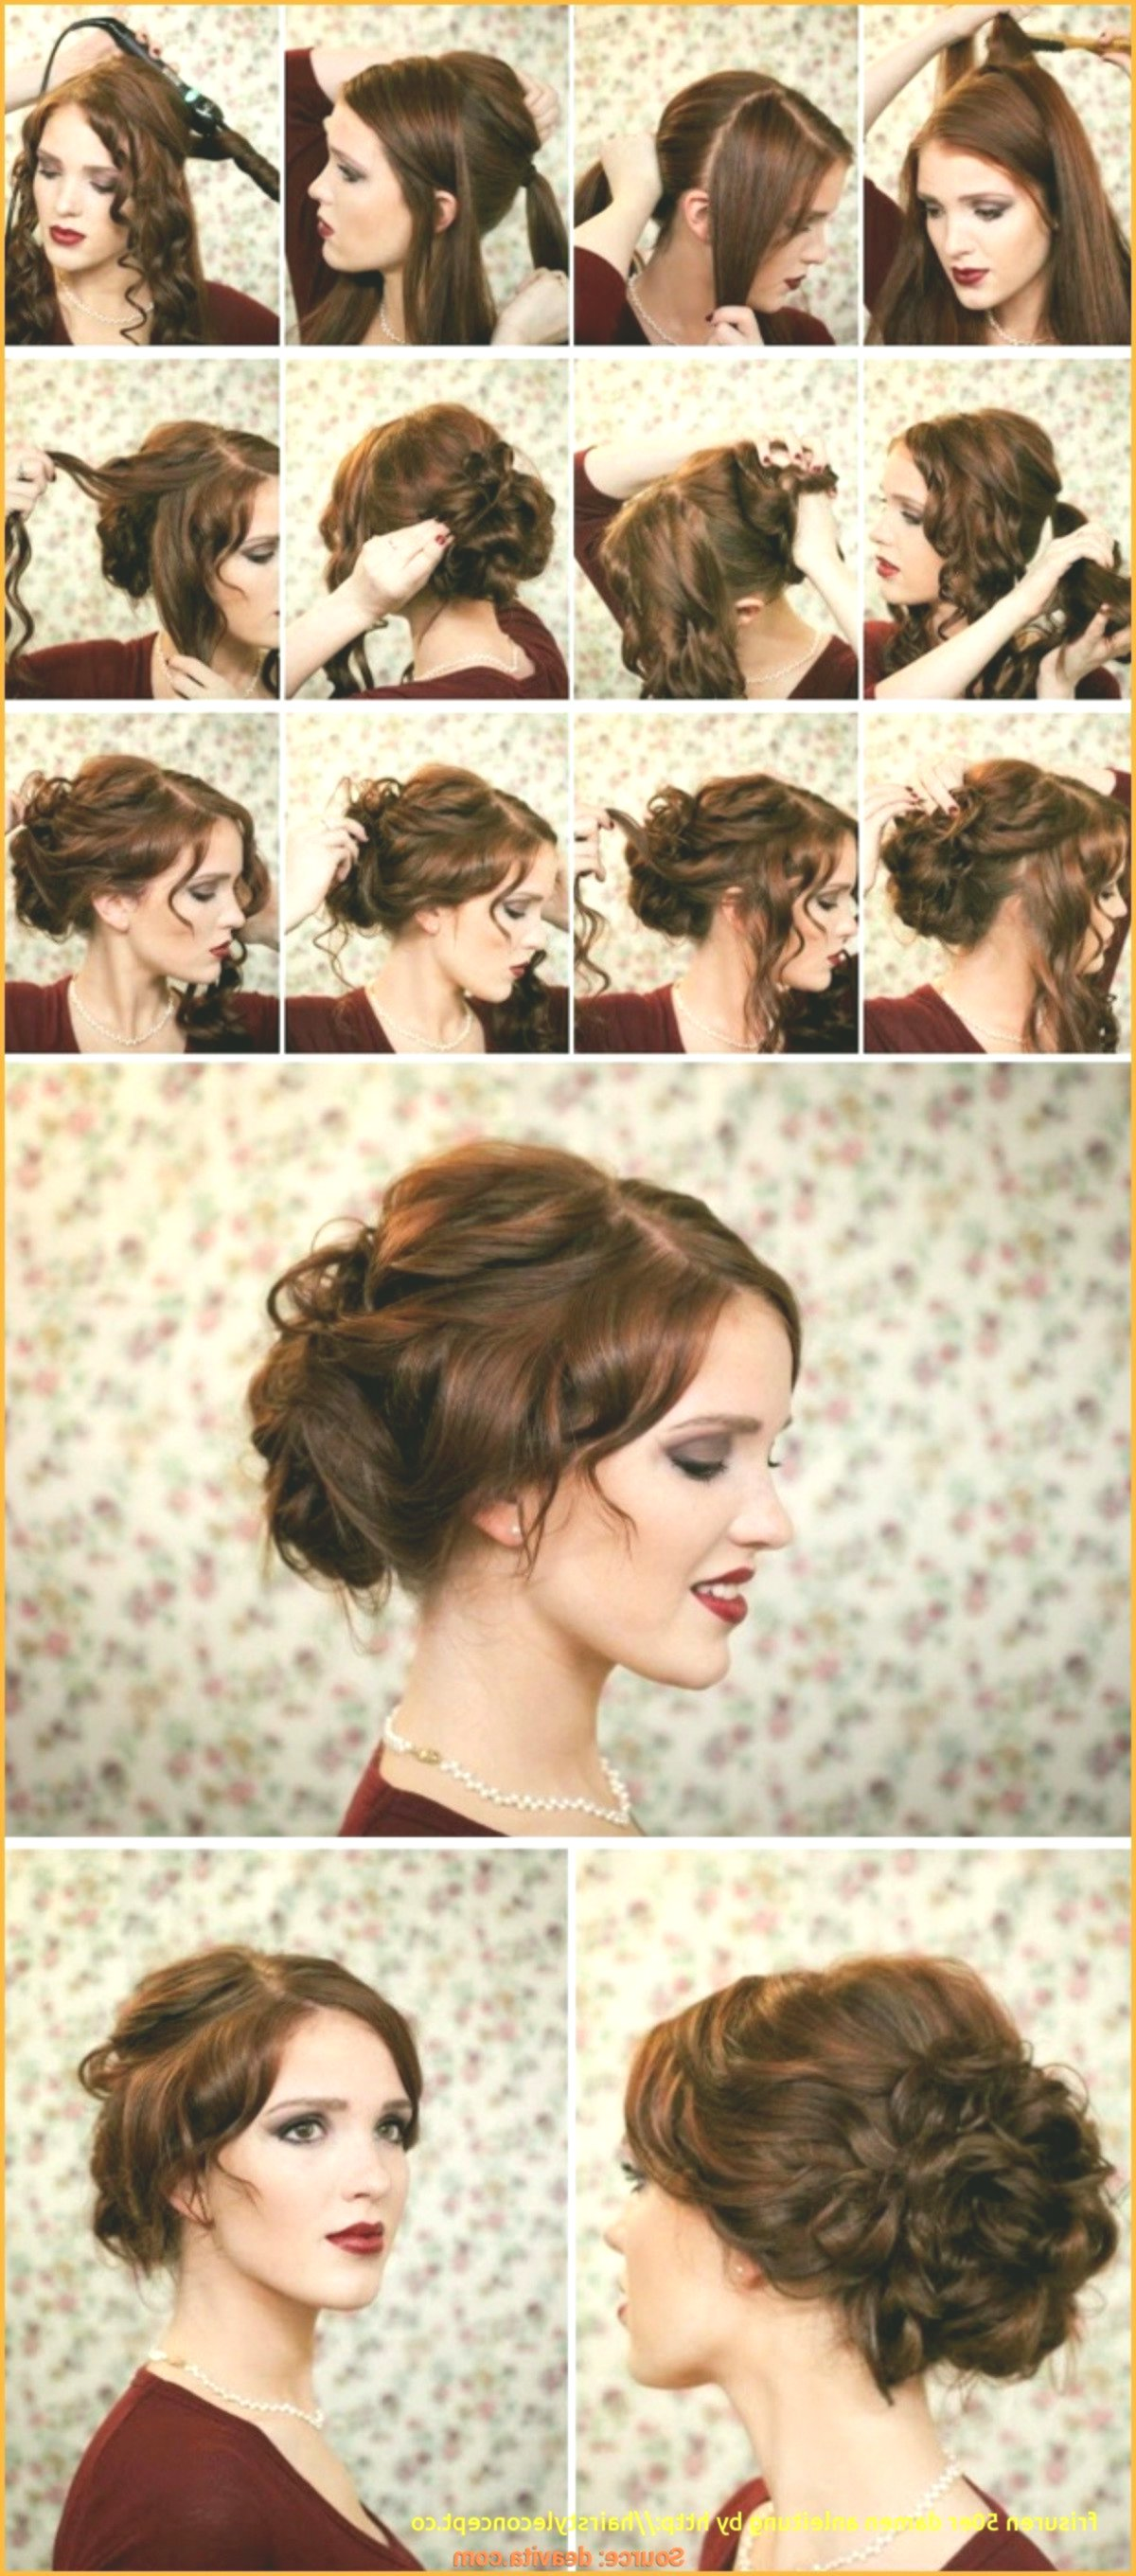 lovely side hairstyles plan-Cute Side Hairstyles gallery